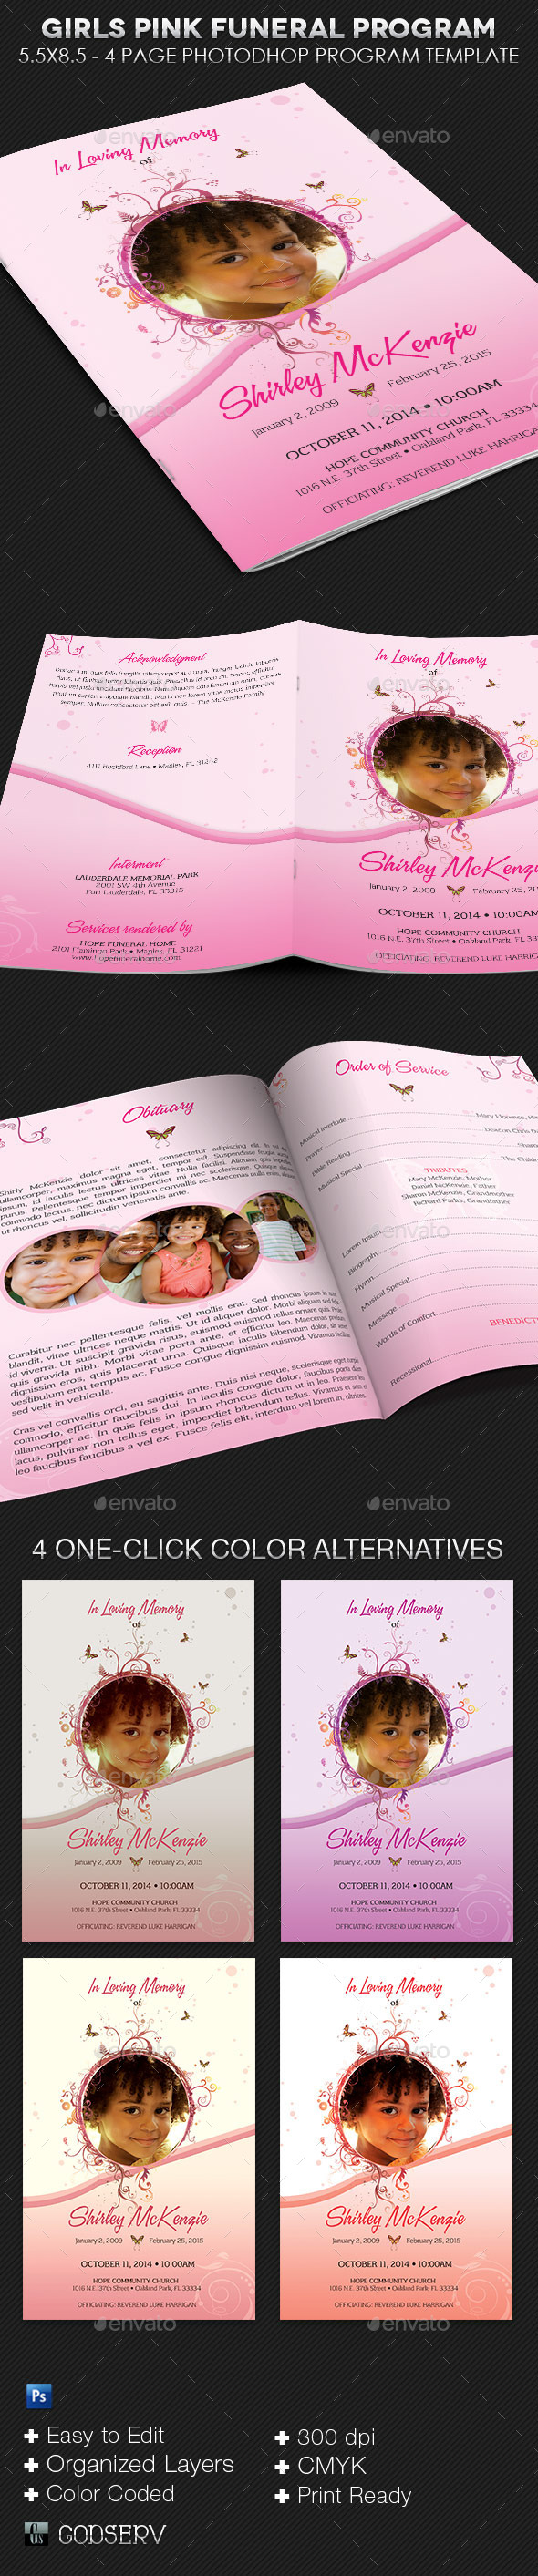 Girls Pink Funeral Program Template - Informational Brochures